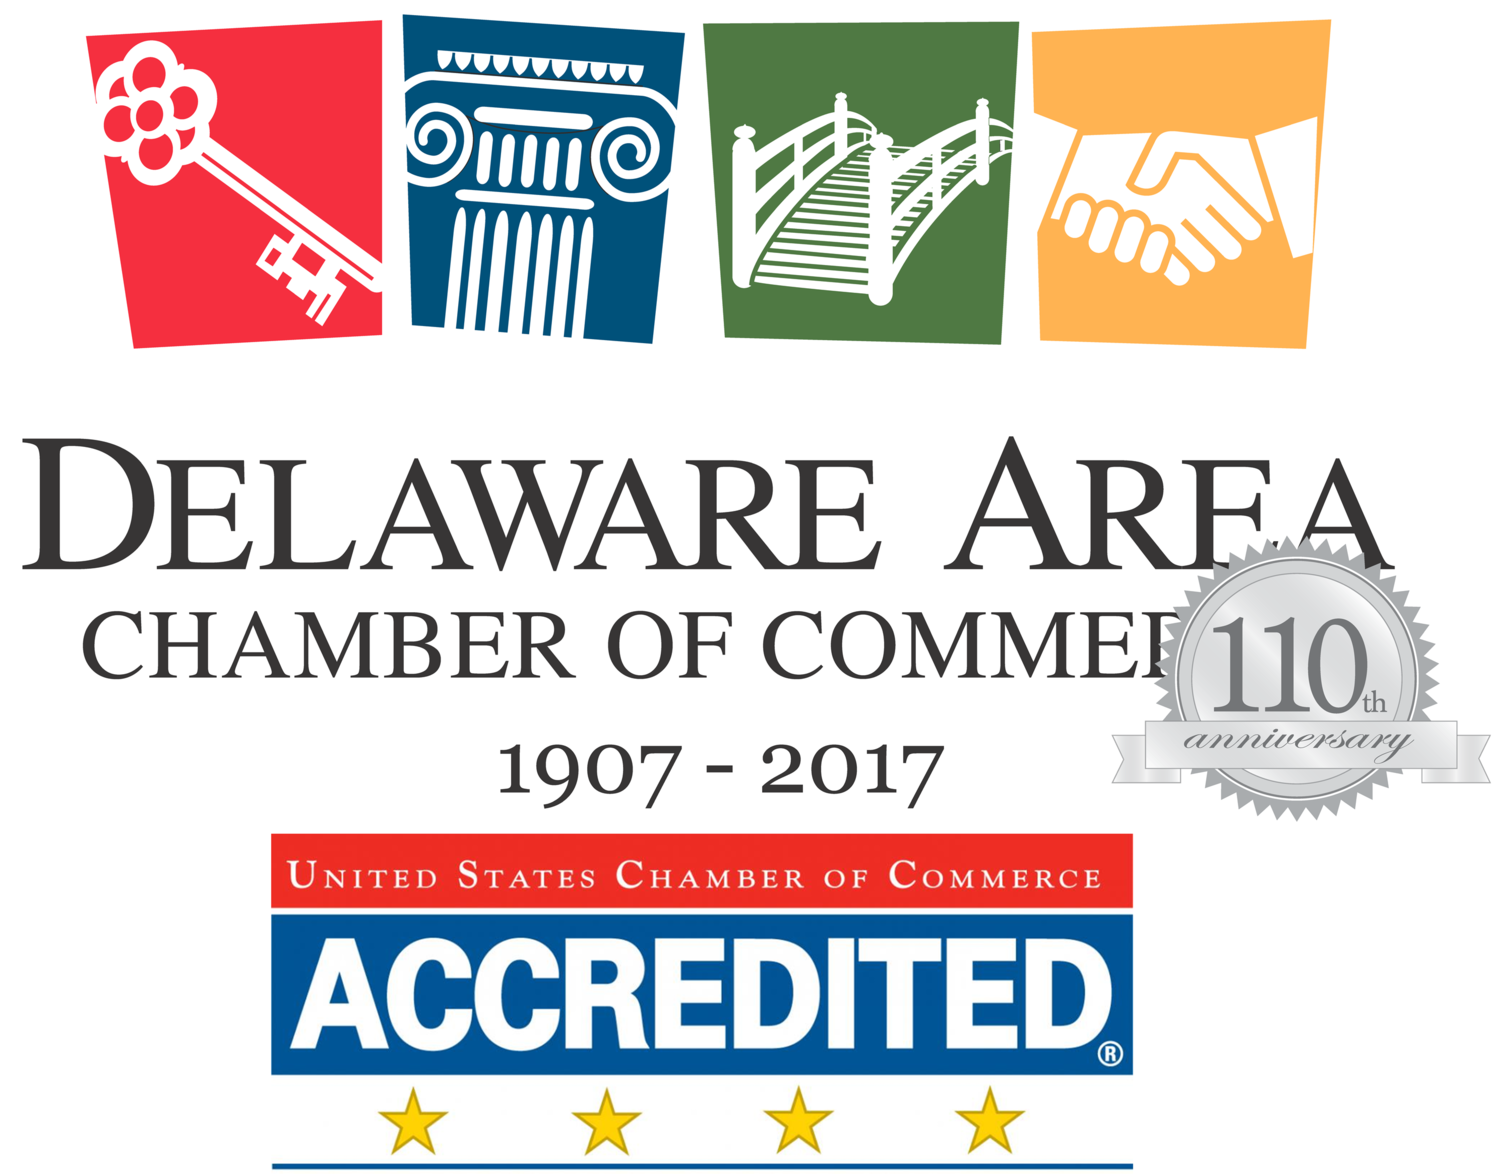 Delaware Area Chamber of Commerce